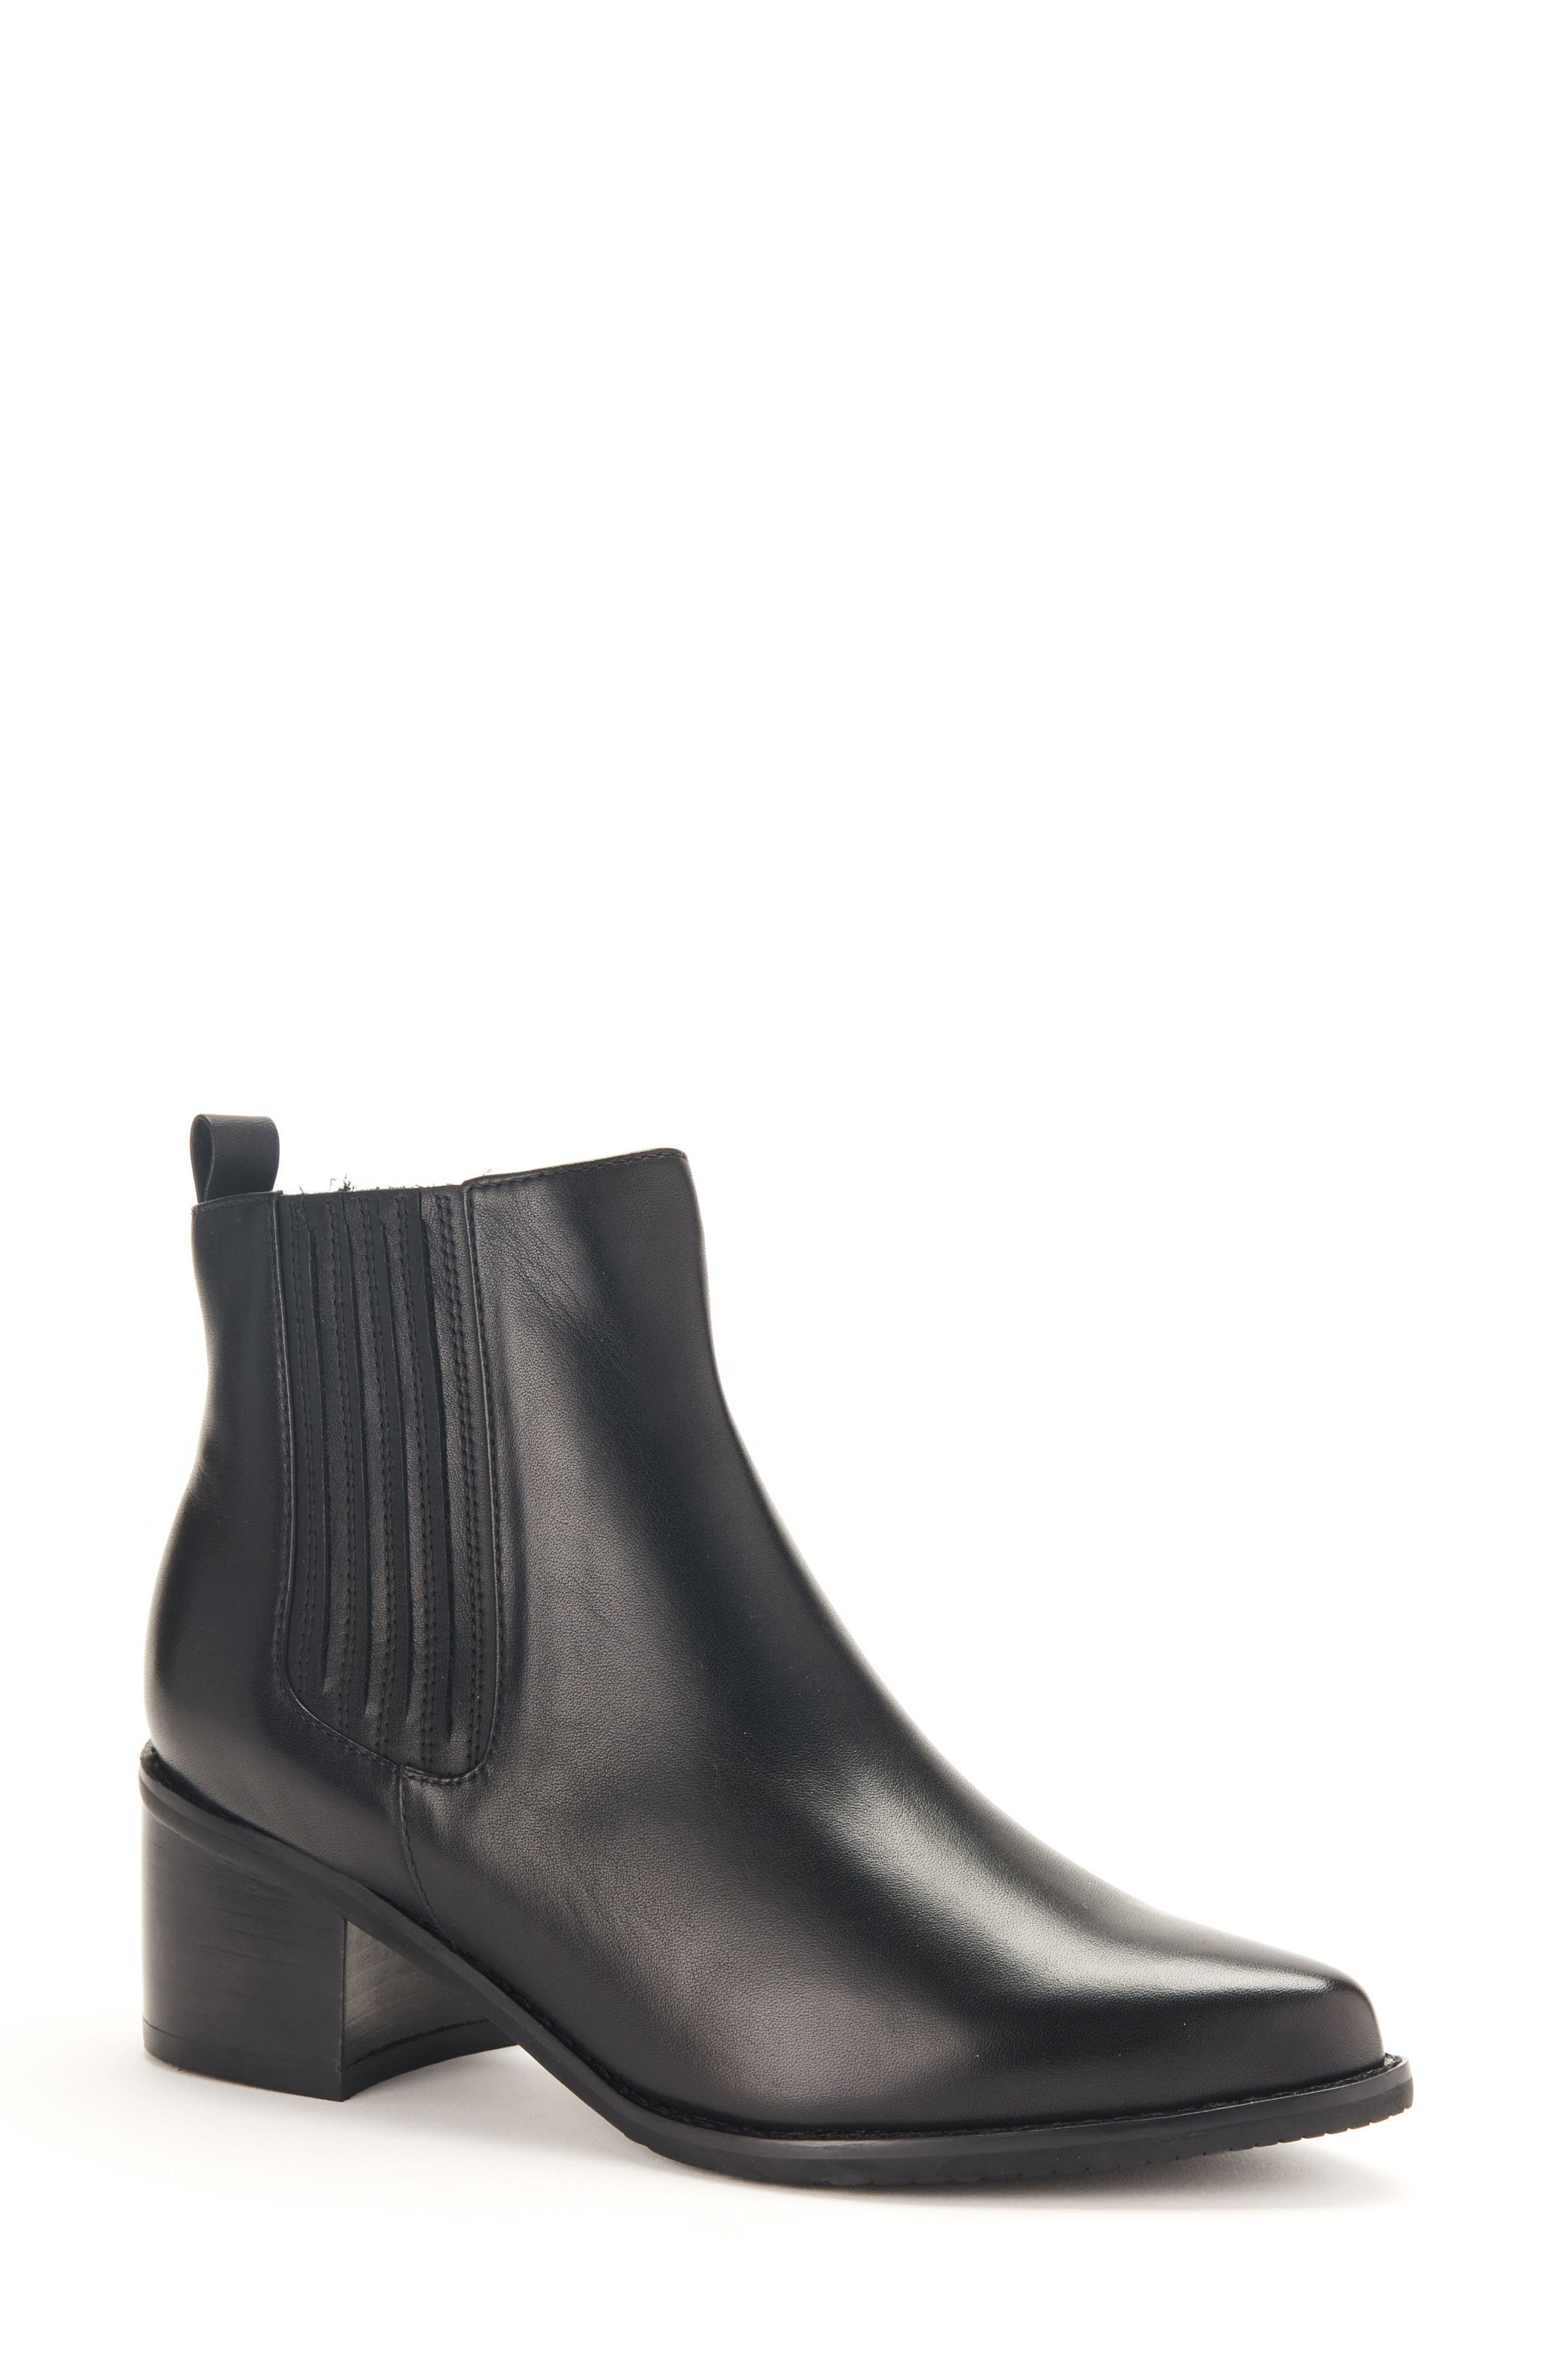 Elvina Waterproof Bootie,                         Main,                         color, Black Leather